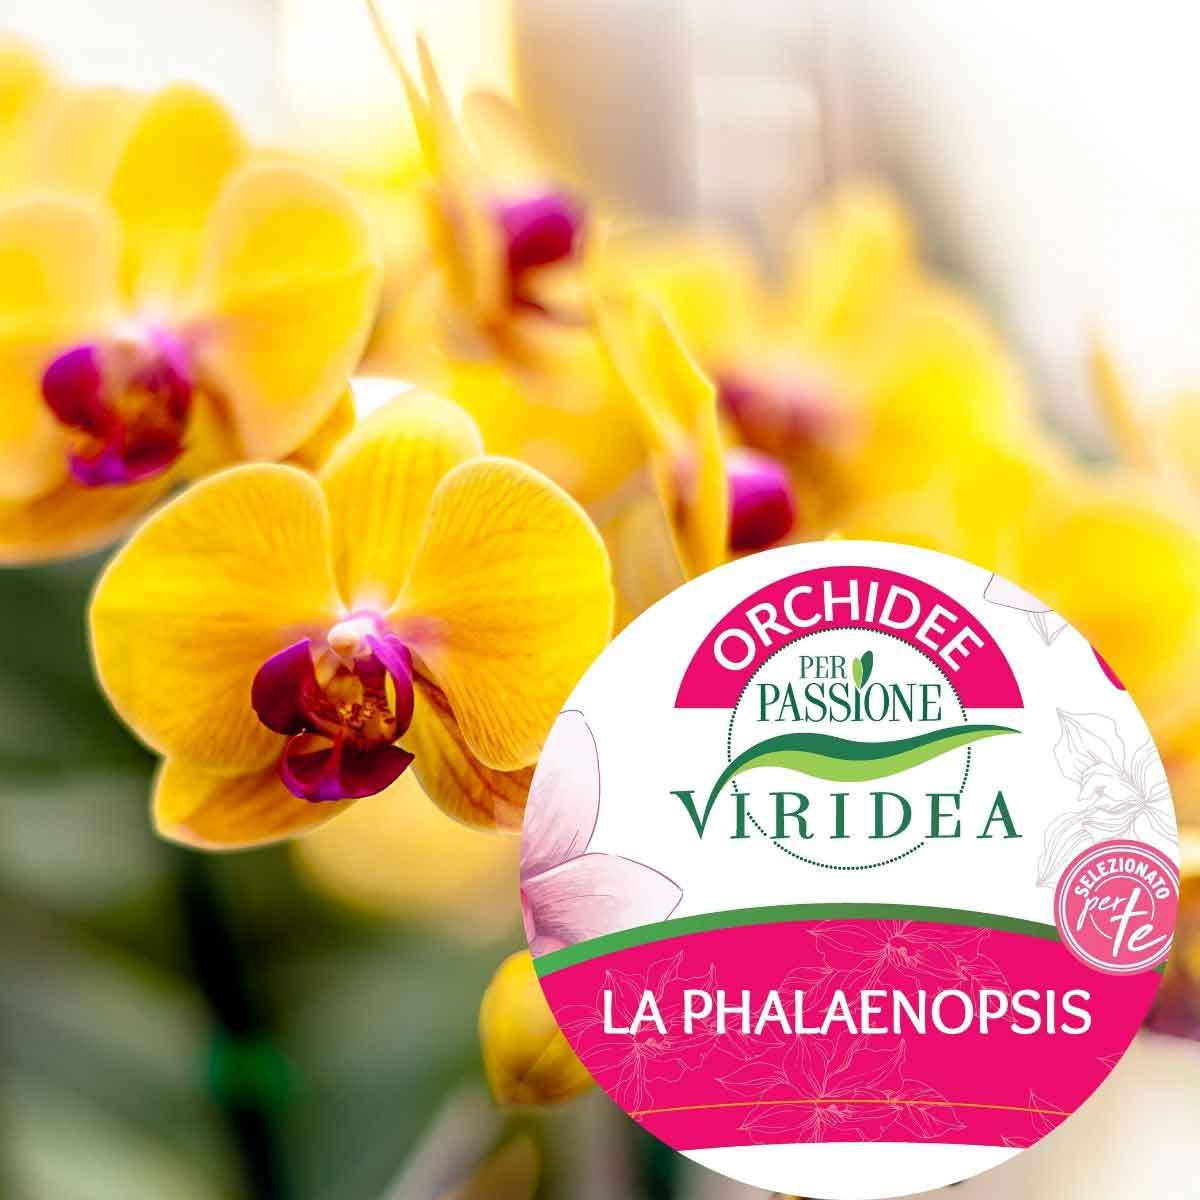 Per Passione – Orchidea Phalaenopsis extra a due rami